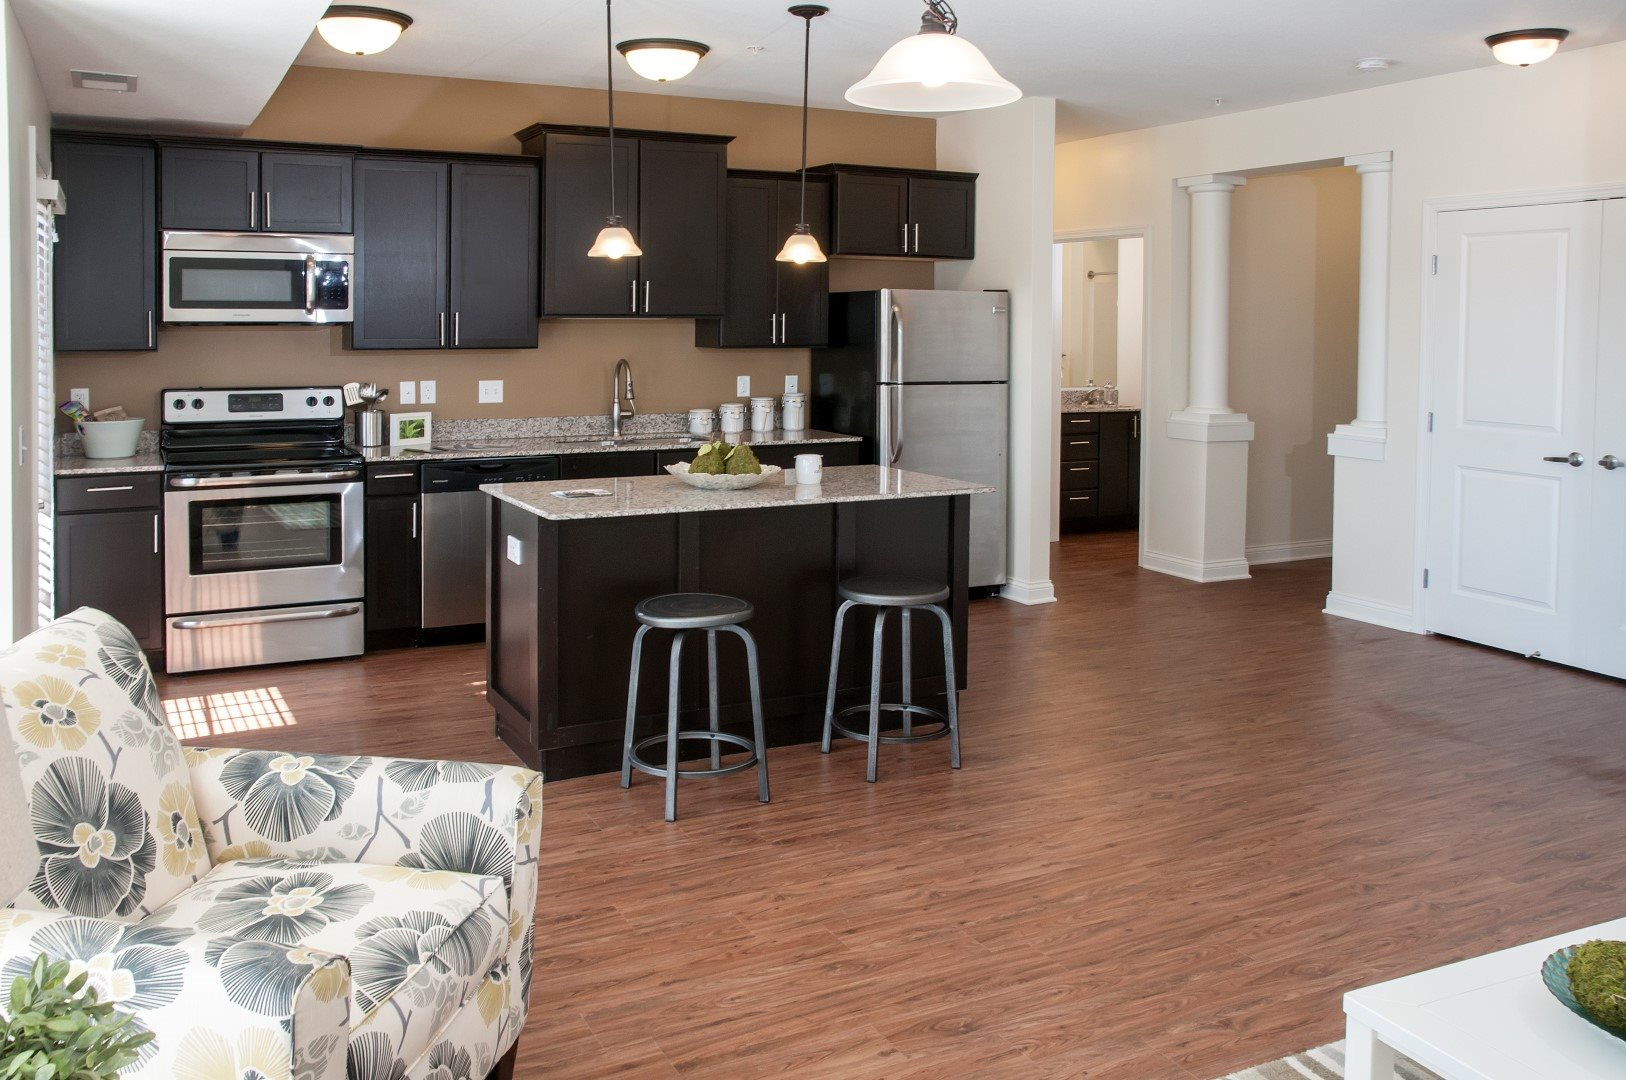 Eat-in Kitchens at 5 Central Apartments, Osseo, MN,55369